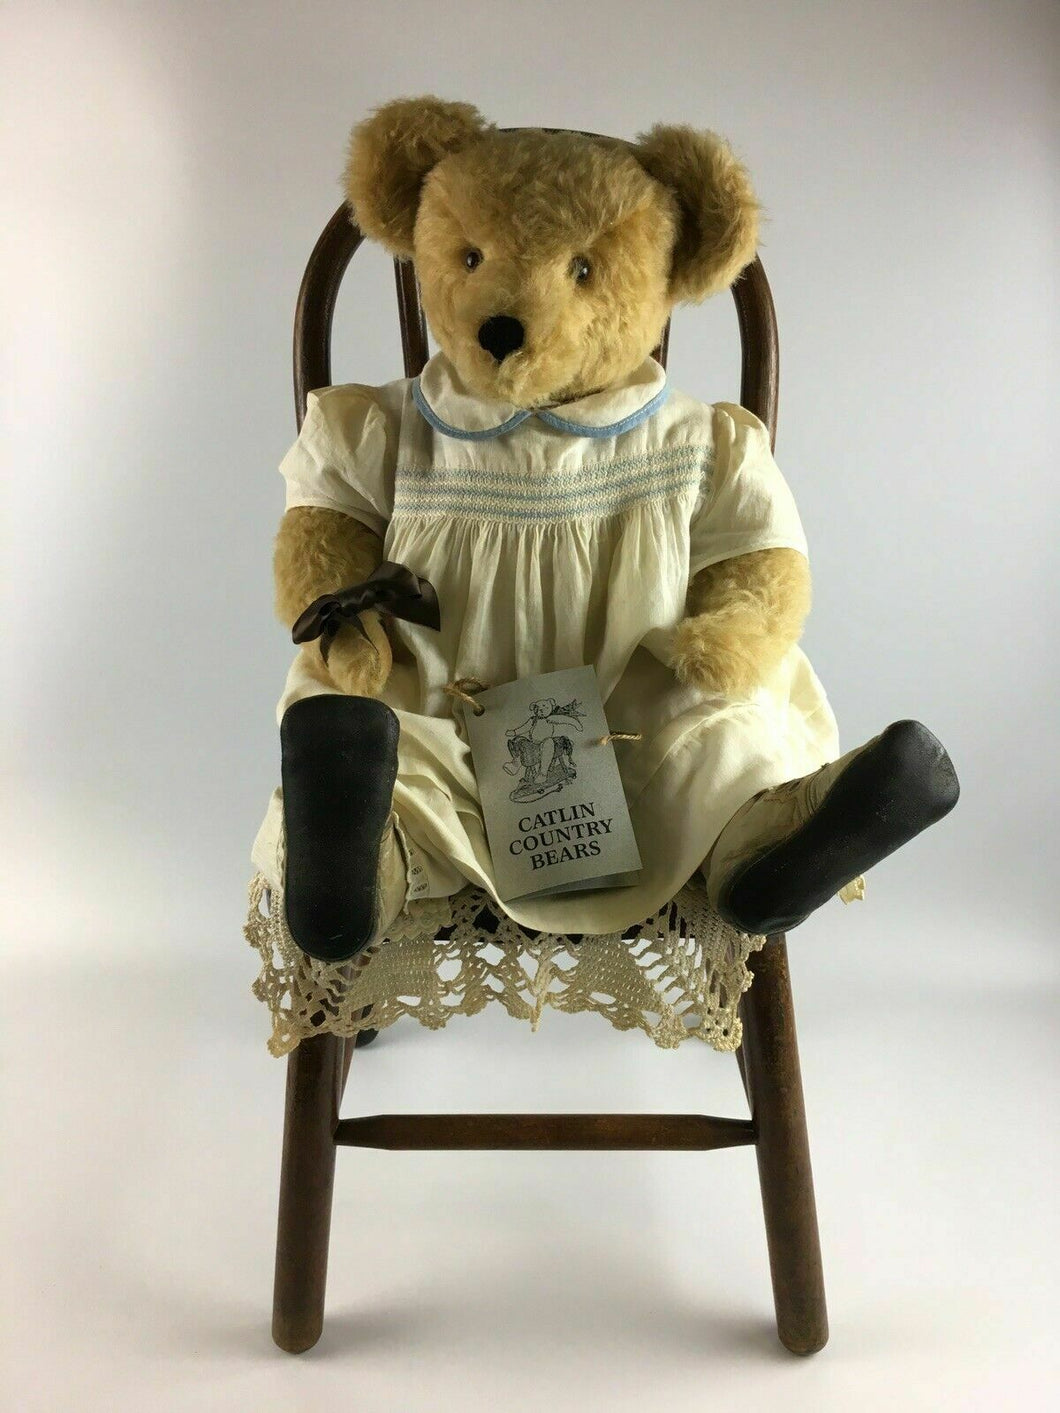 Vintage Handmade Catlin Country Bears With Chair - Lot 3378